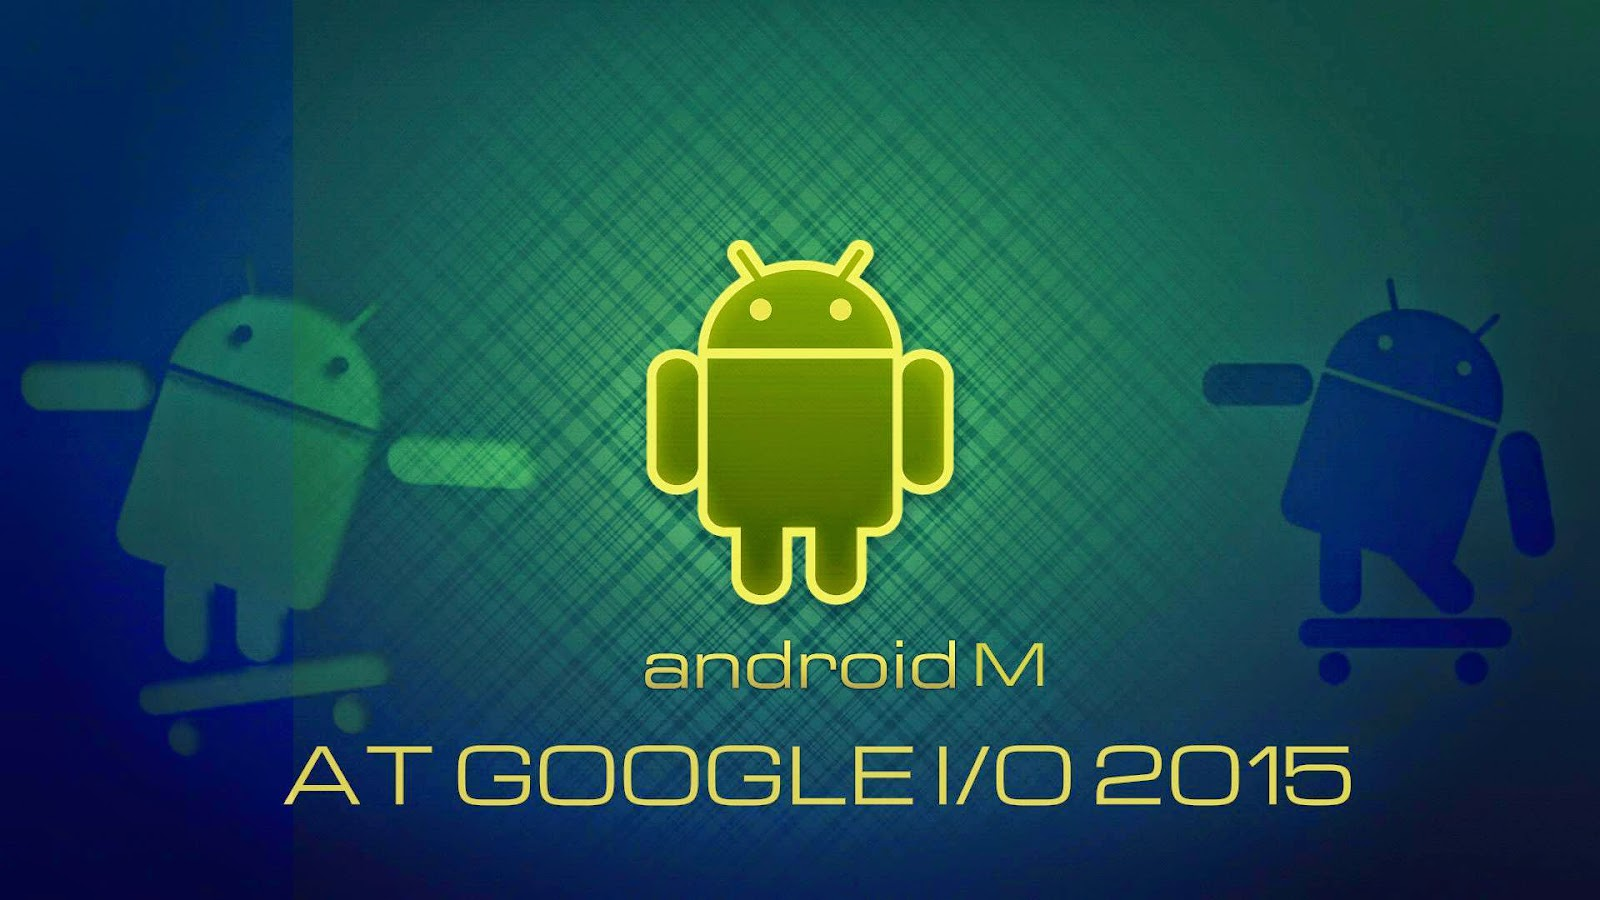 Android M to introduce native